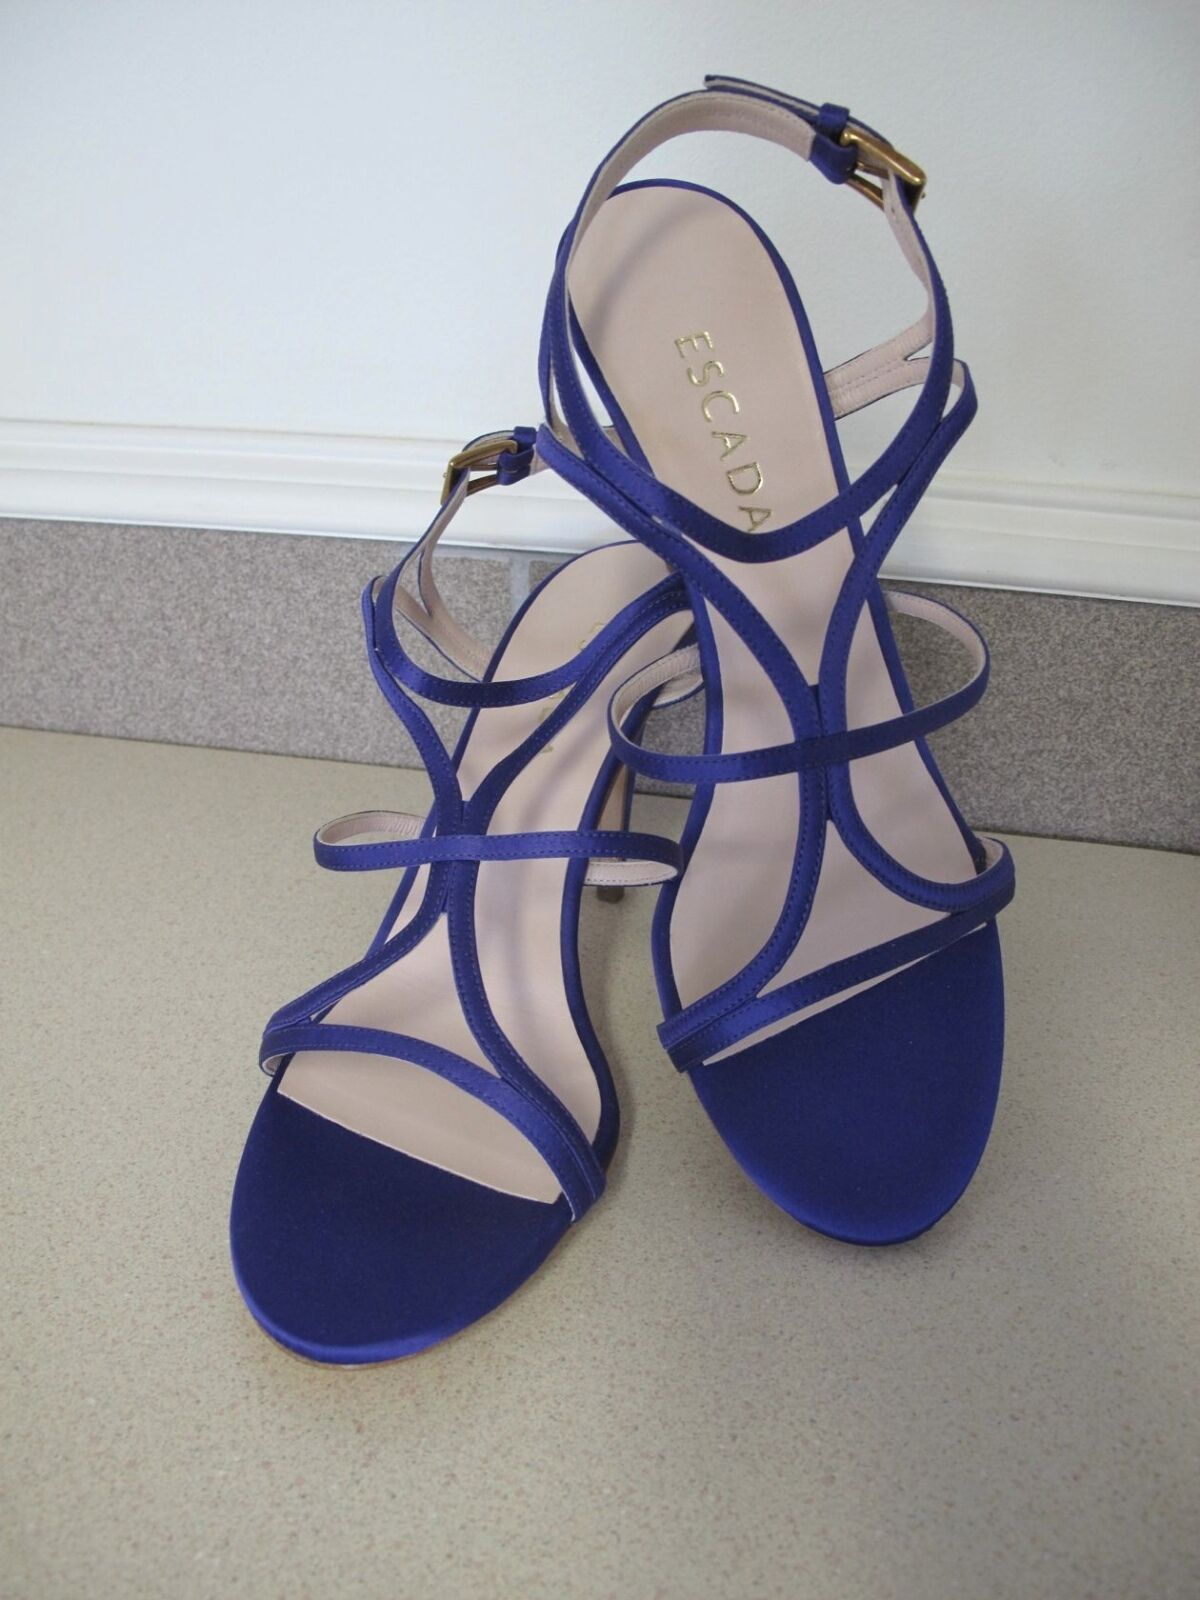 Women's ESCADA Sandals shoes Deep Purple Satin Strappy sz 9.5 made  New Box